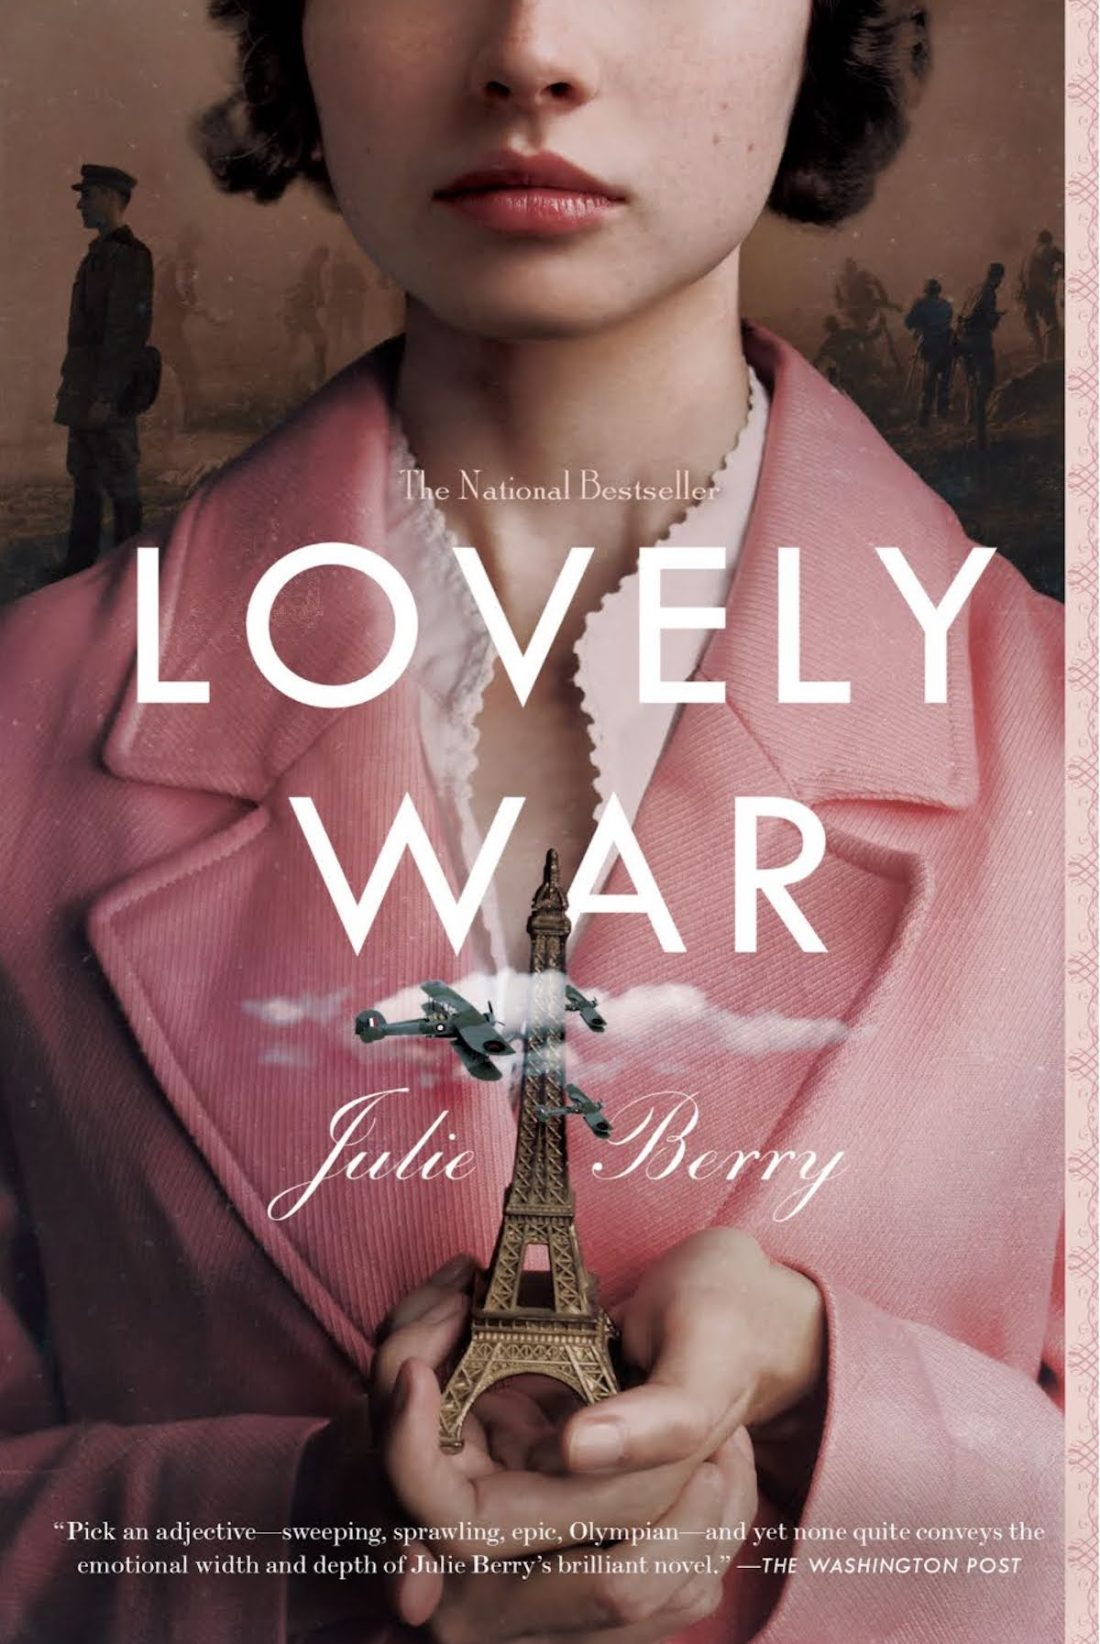 book cover of Lovely War by Julie Berry